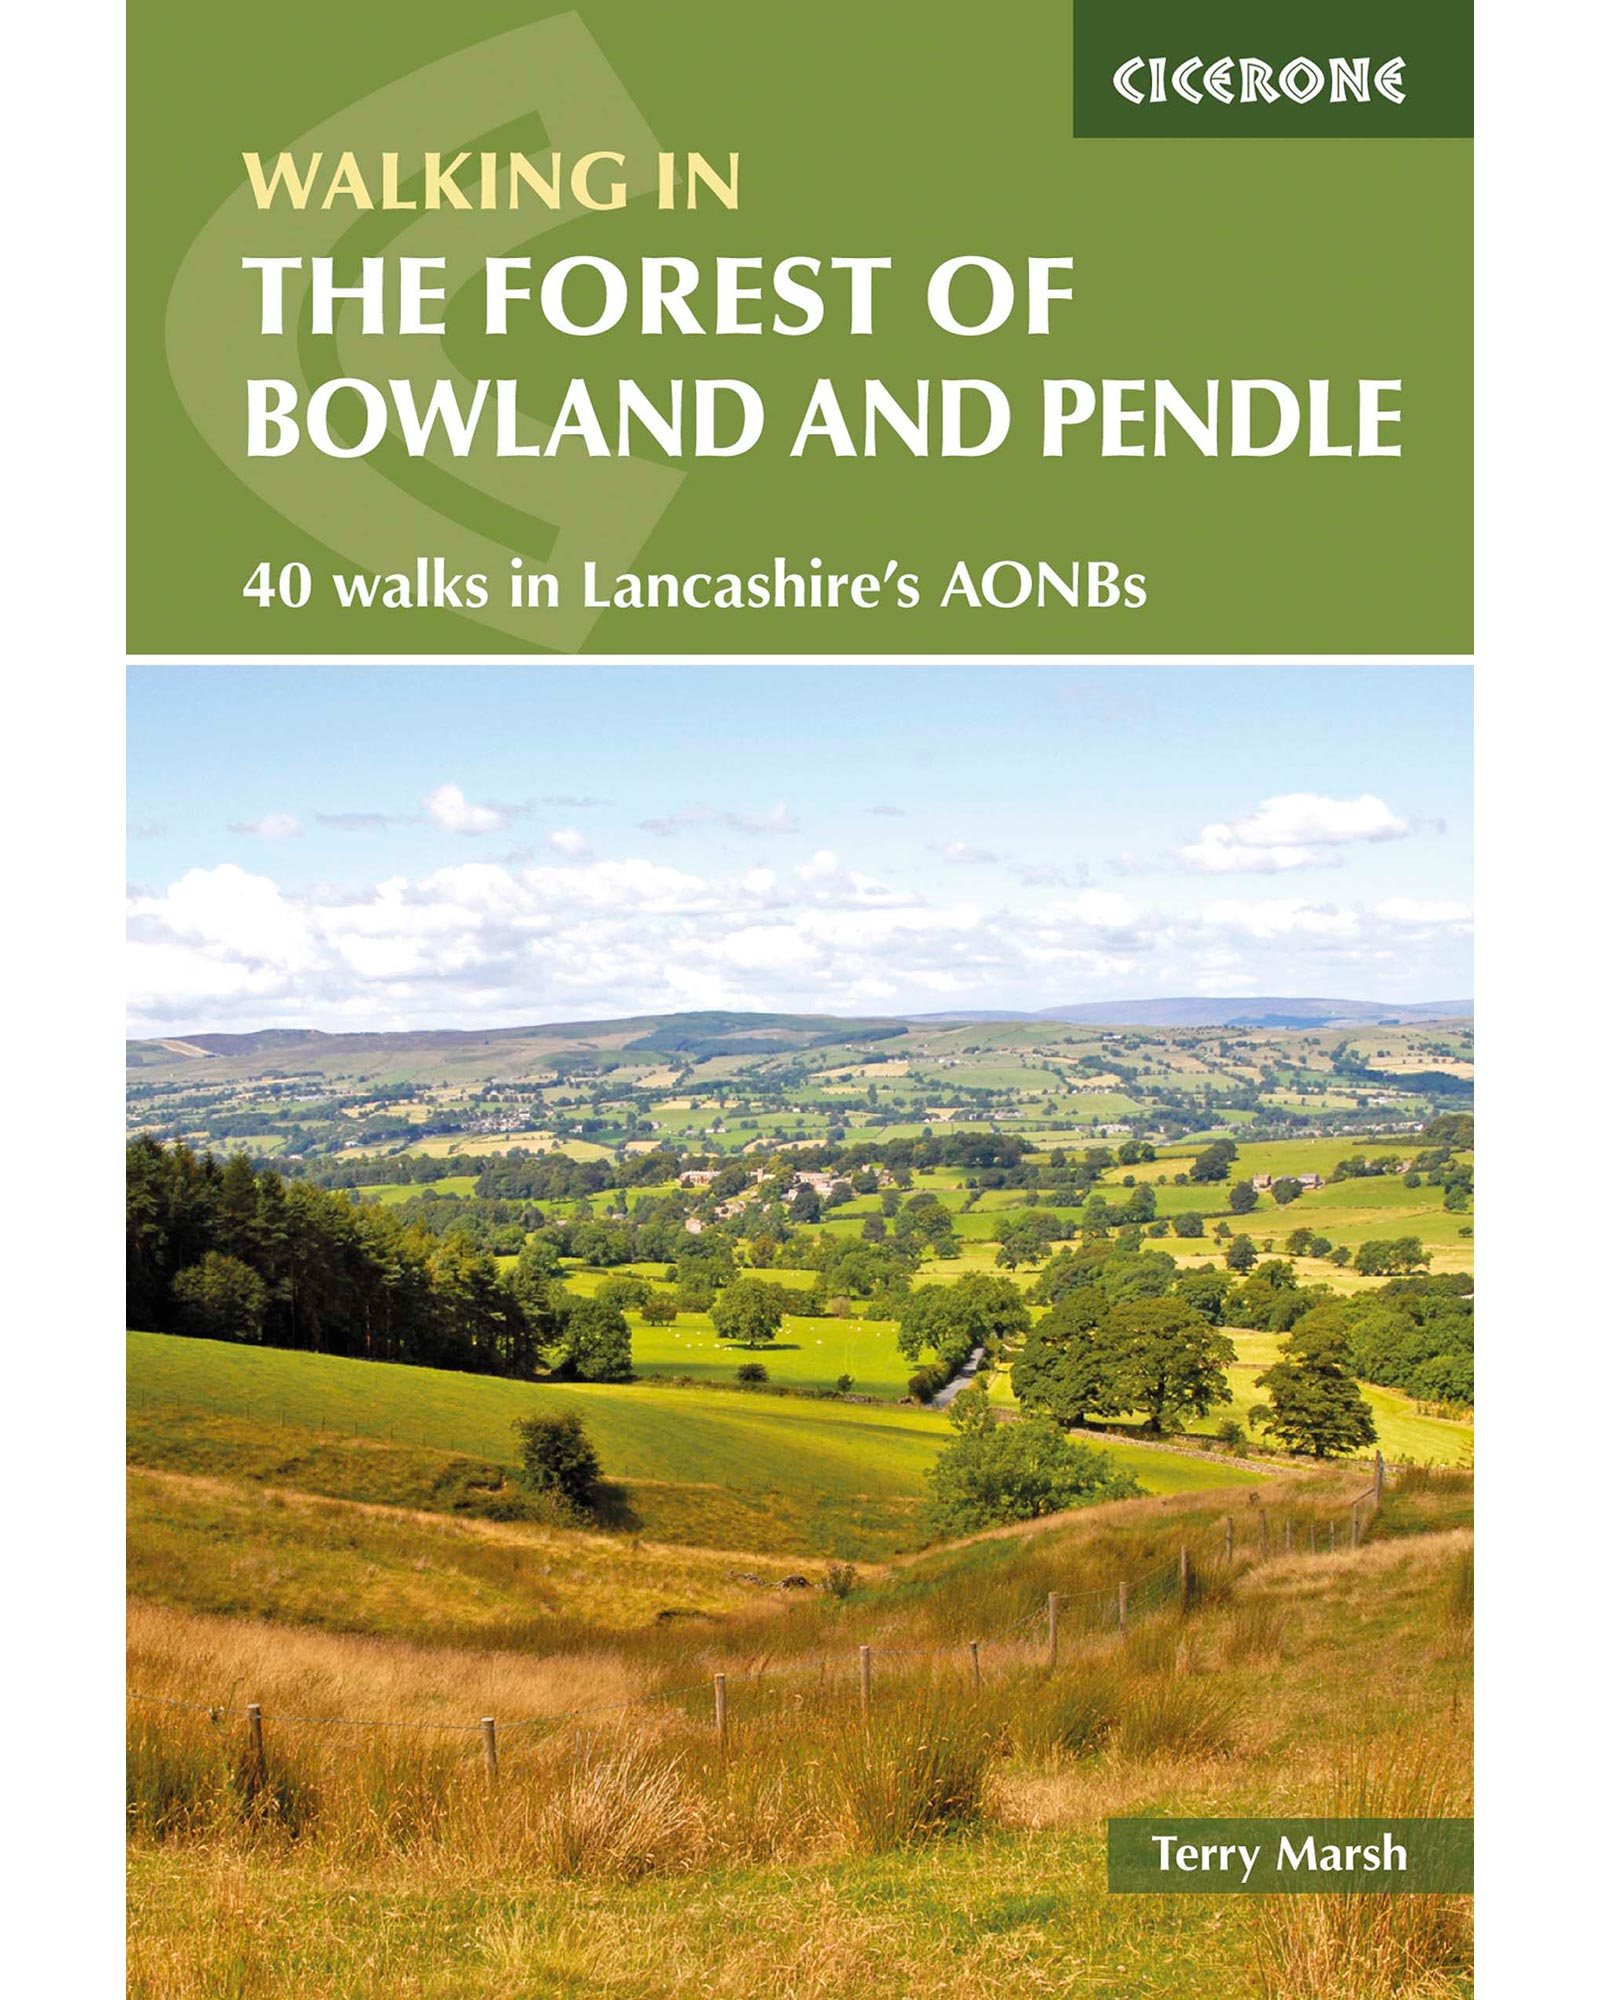 Cicerone Walking in the Forest of Bowland and Pendle 0